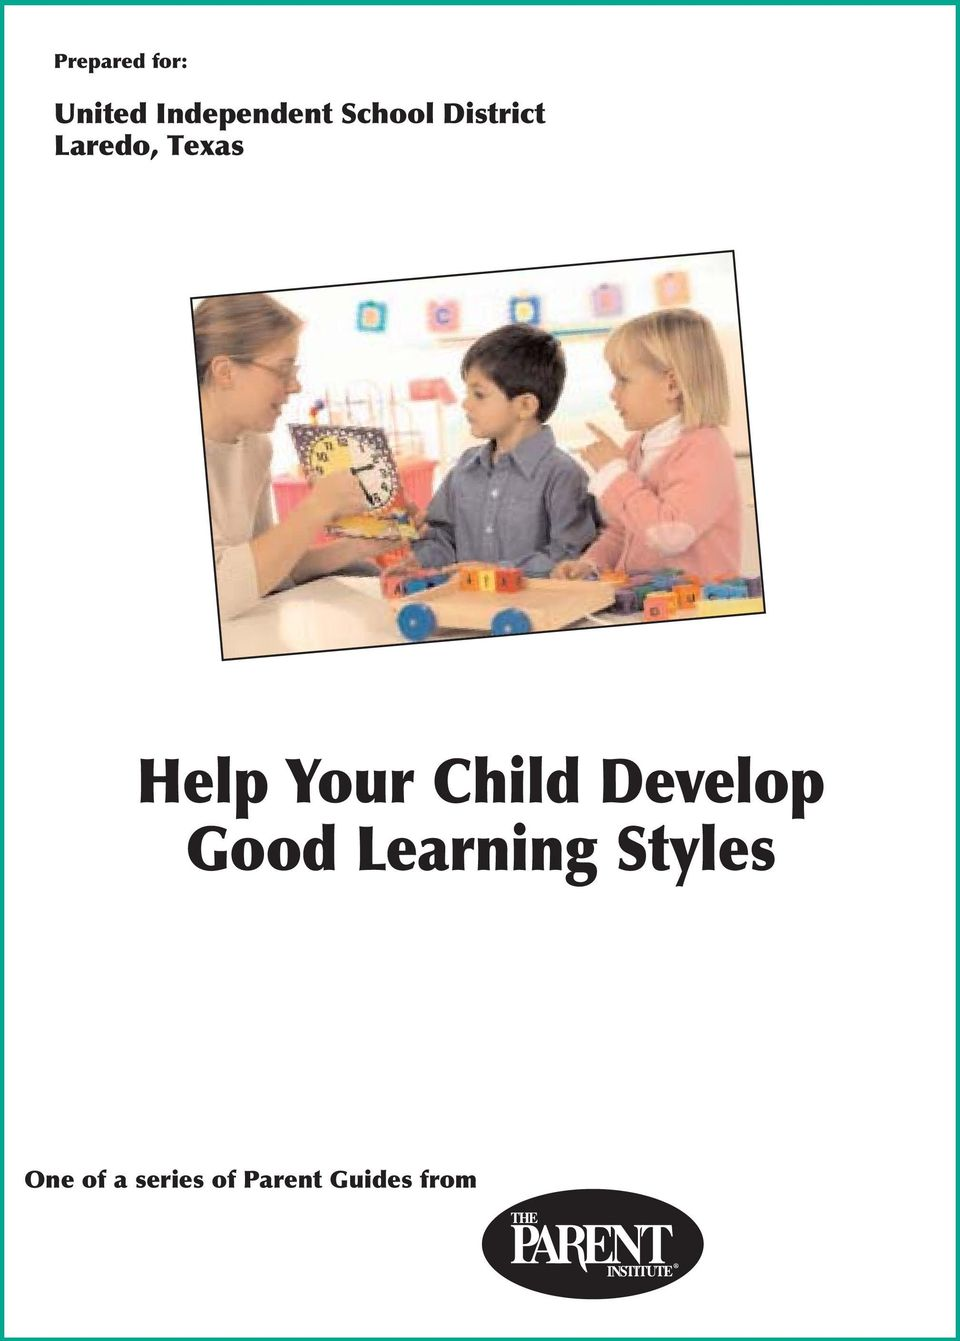 Your Child Develop Good Learning